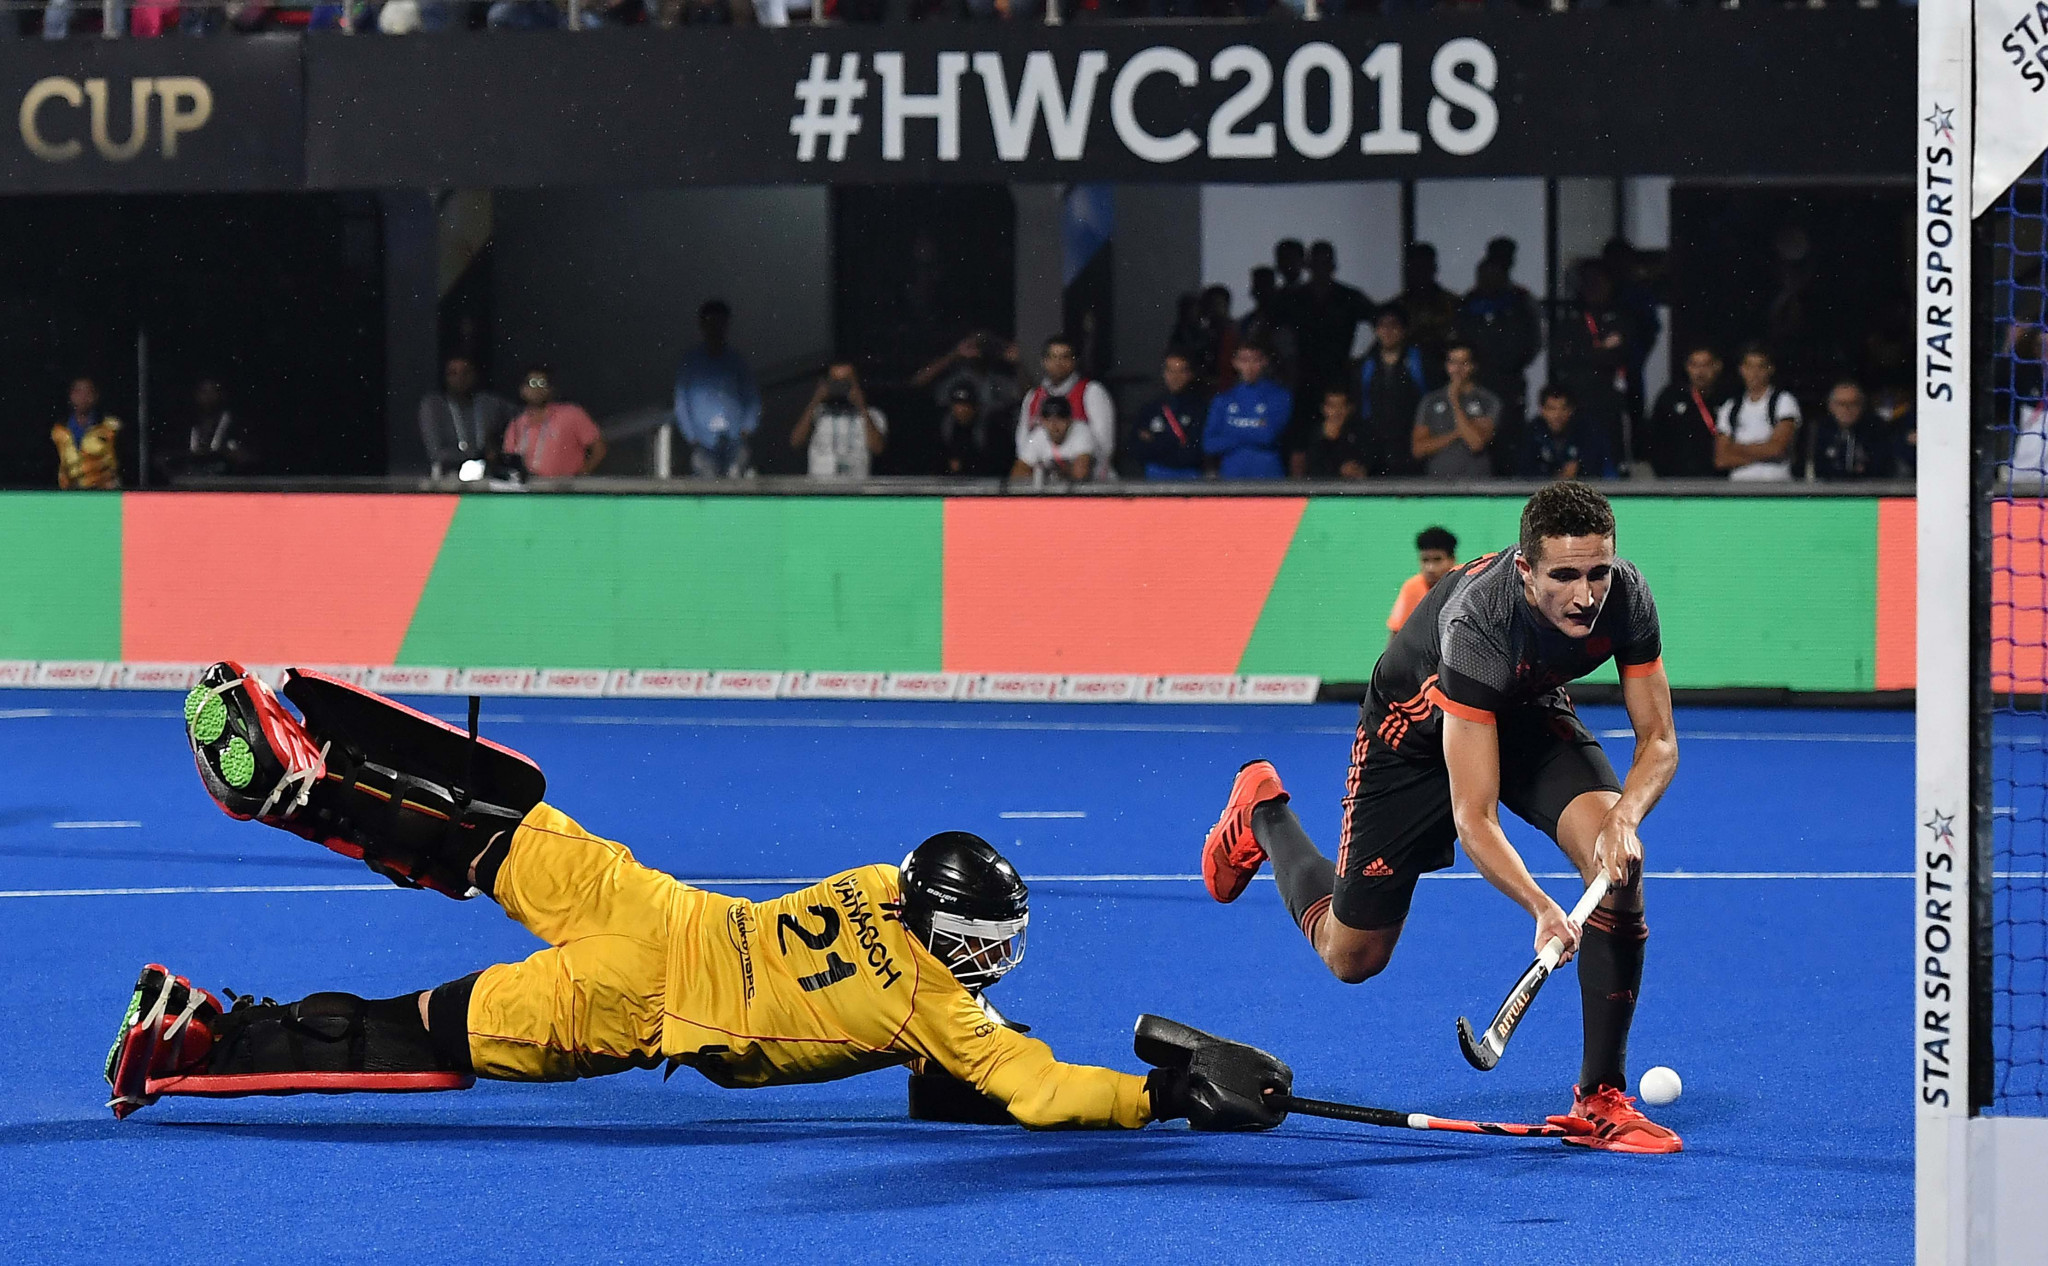 Belgium won the Men's Hockey World Cup last year ©Getty Images